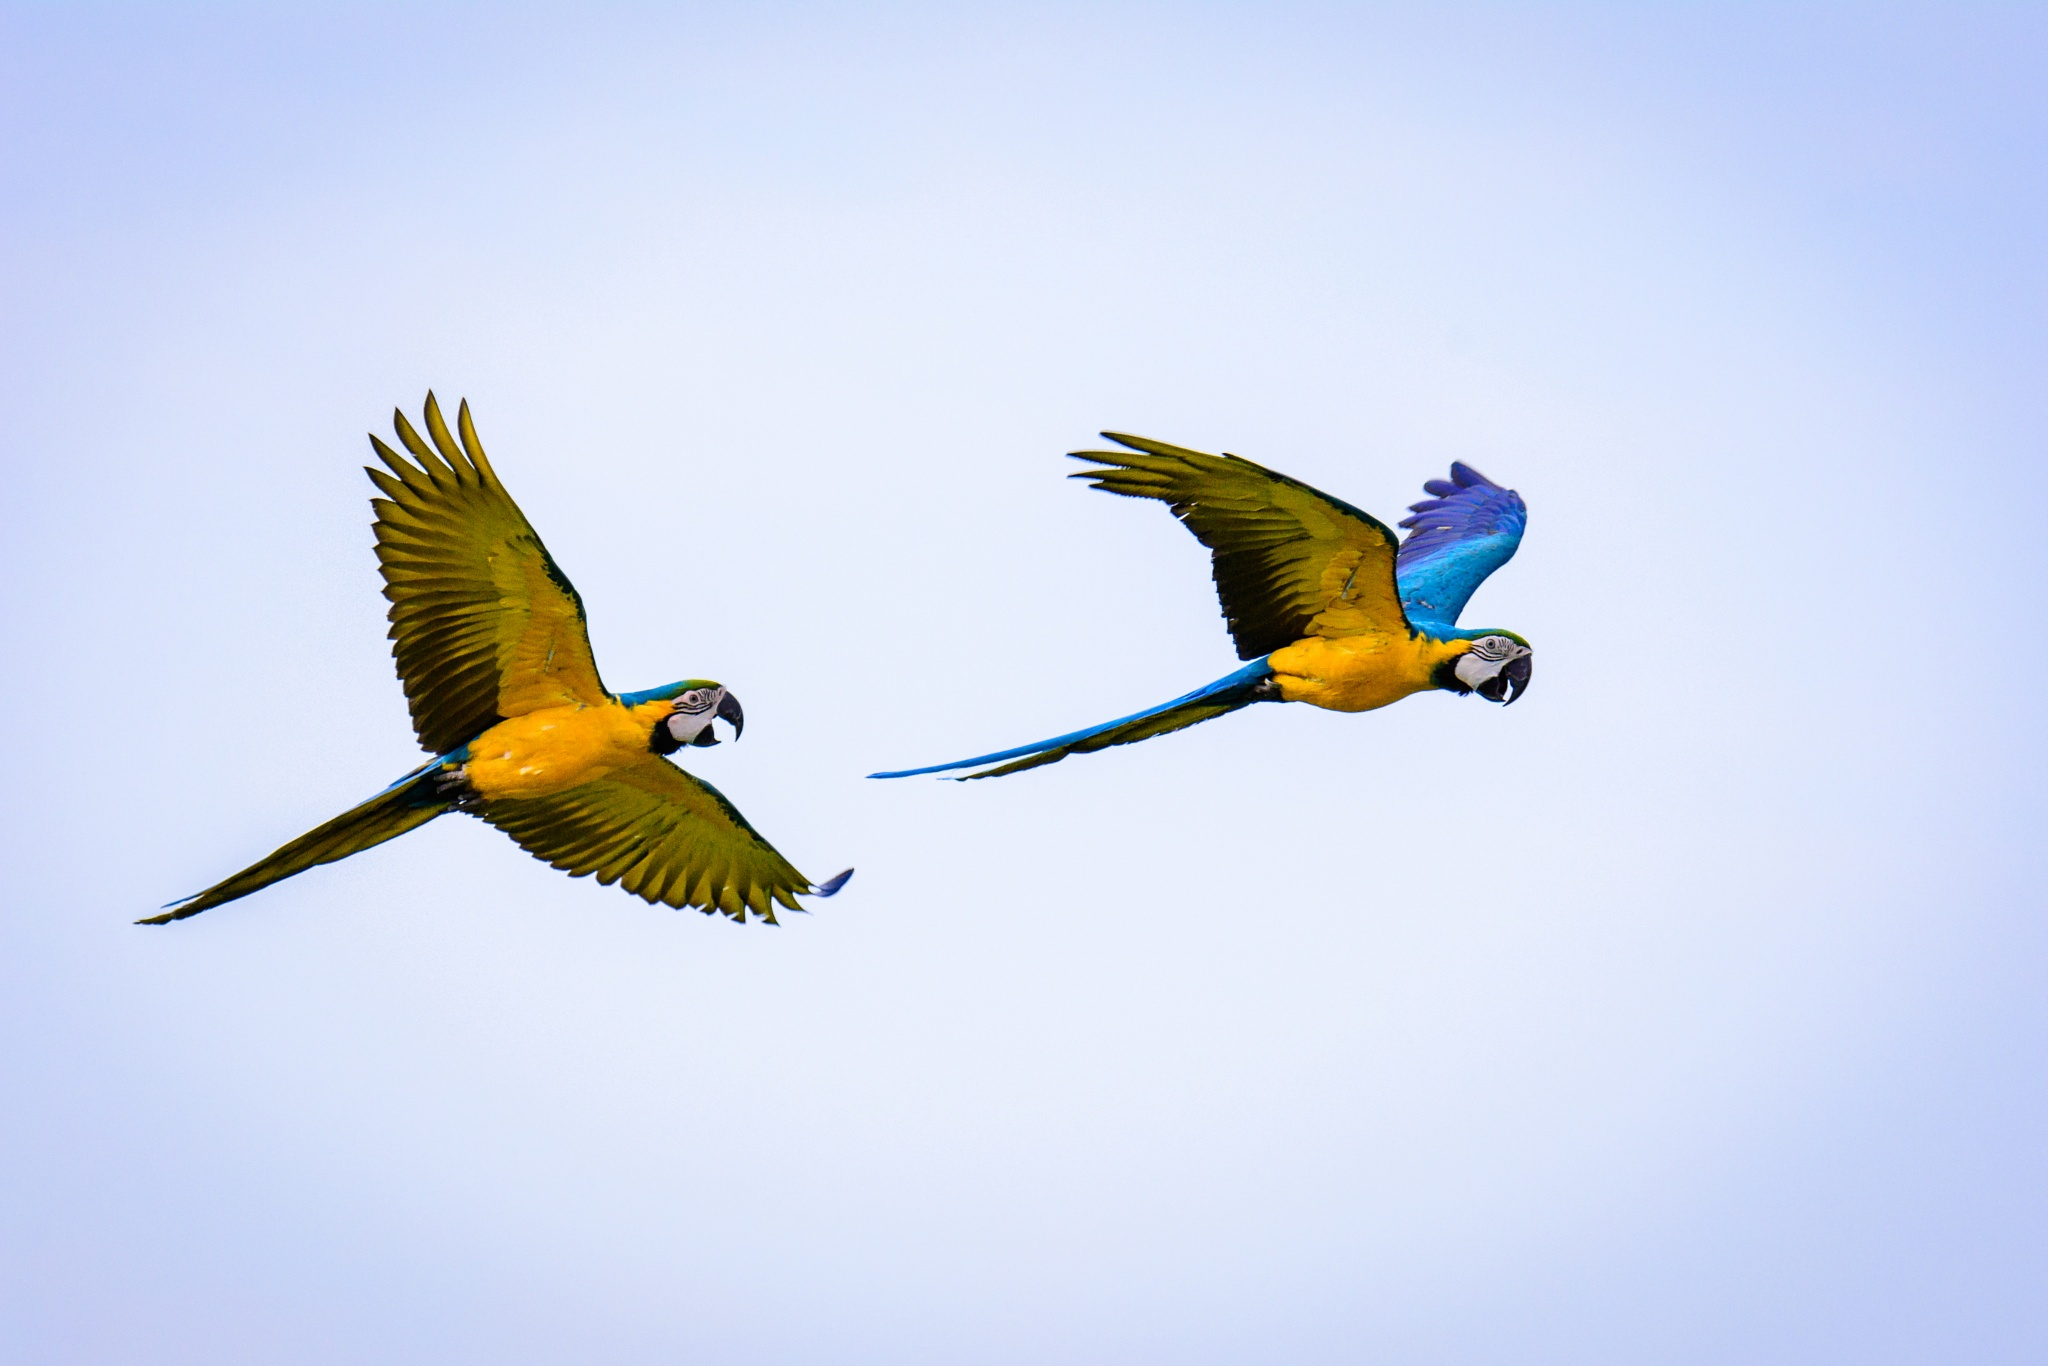 Parrots by pslee